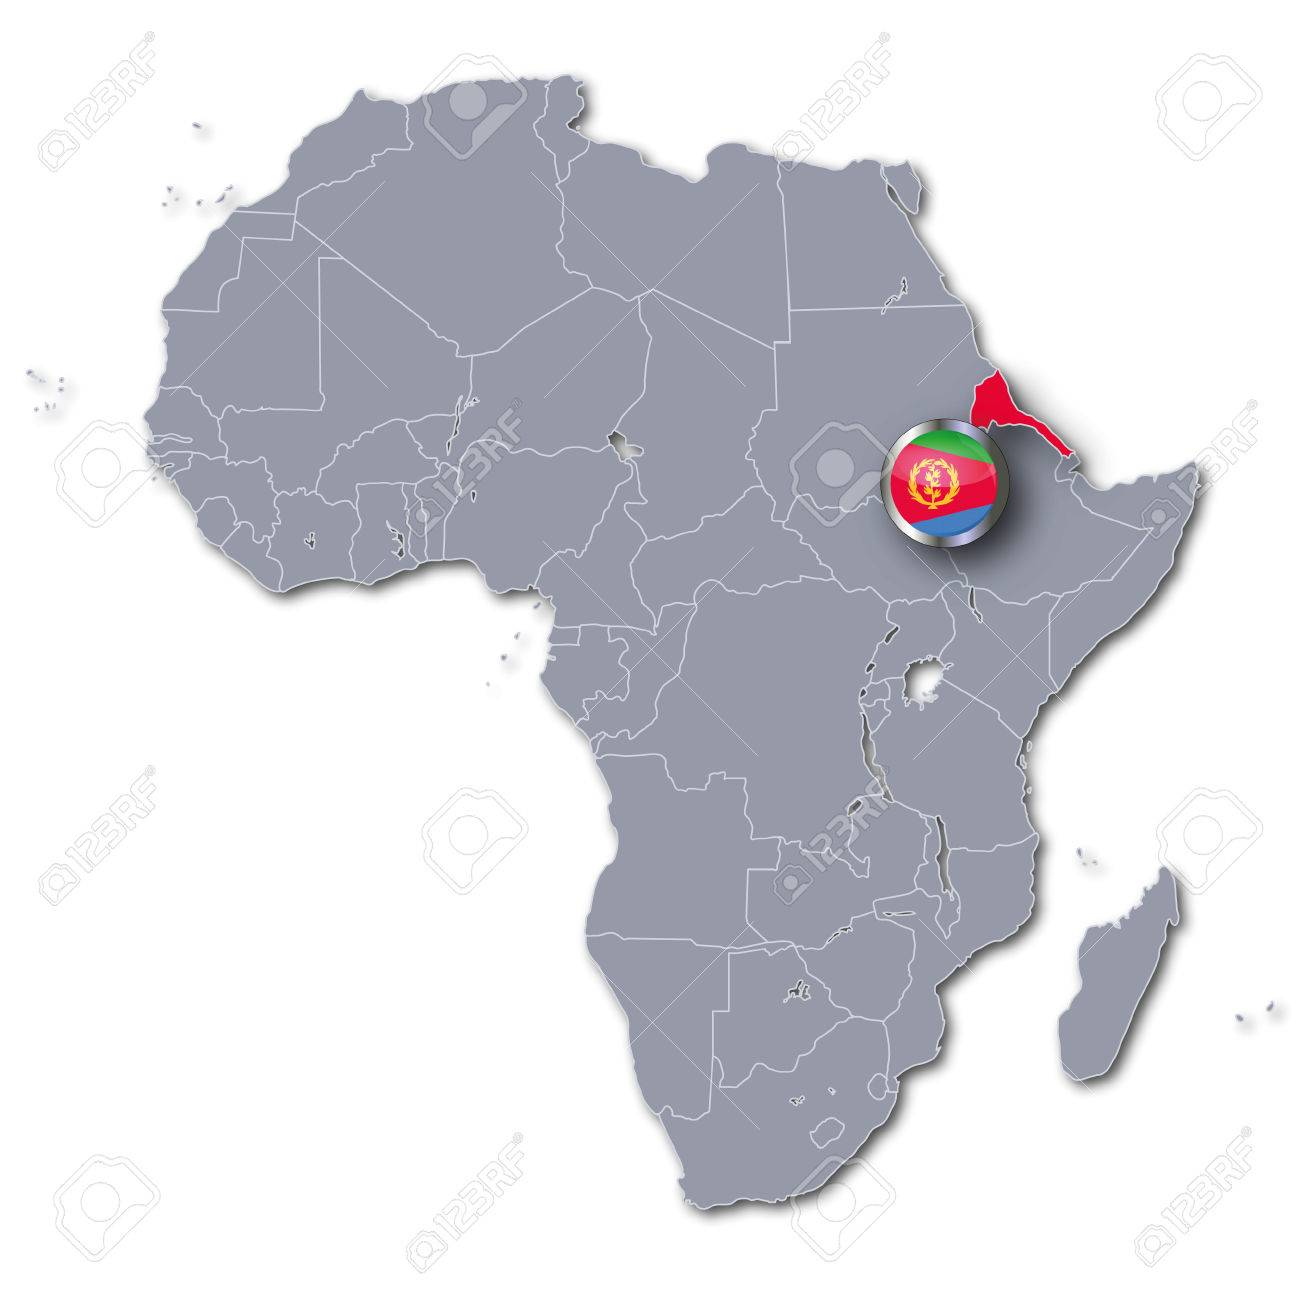 Africa Map With Eritrea Stock Photo Picture And Royalty Free